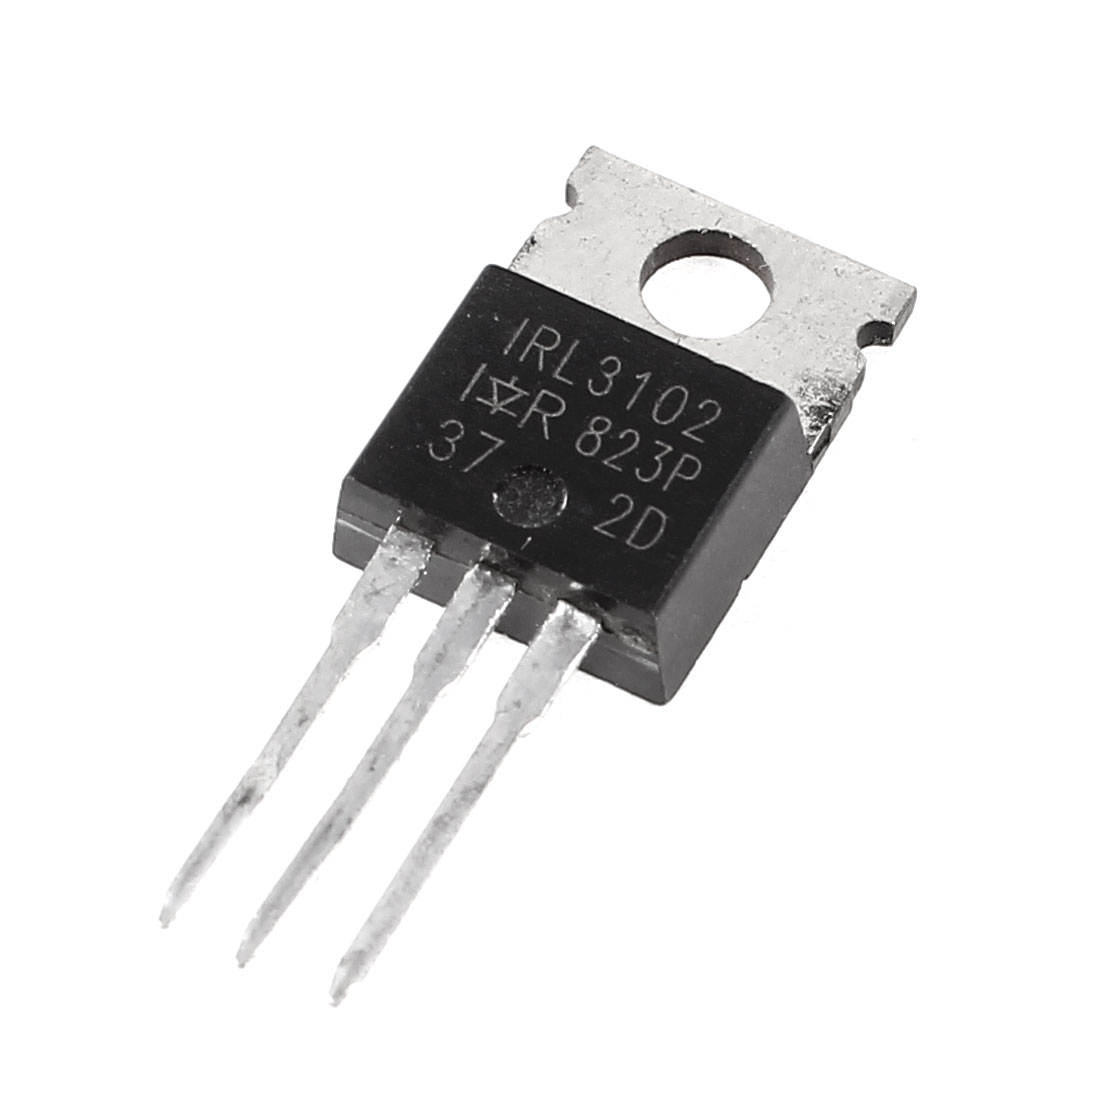 IRL3102 14V 61A High Voltage Semiconductor 3 Pin NPN Power Transistor